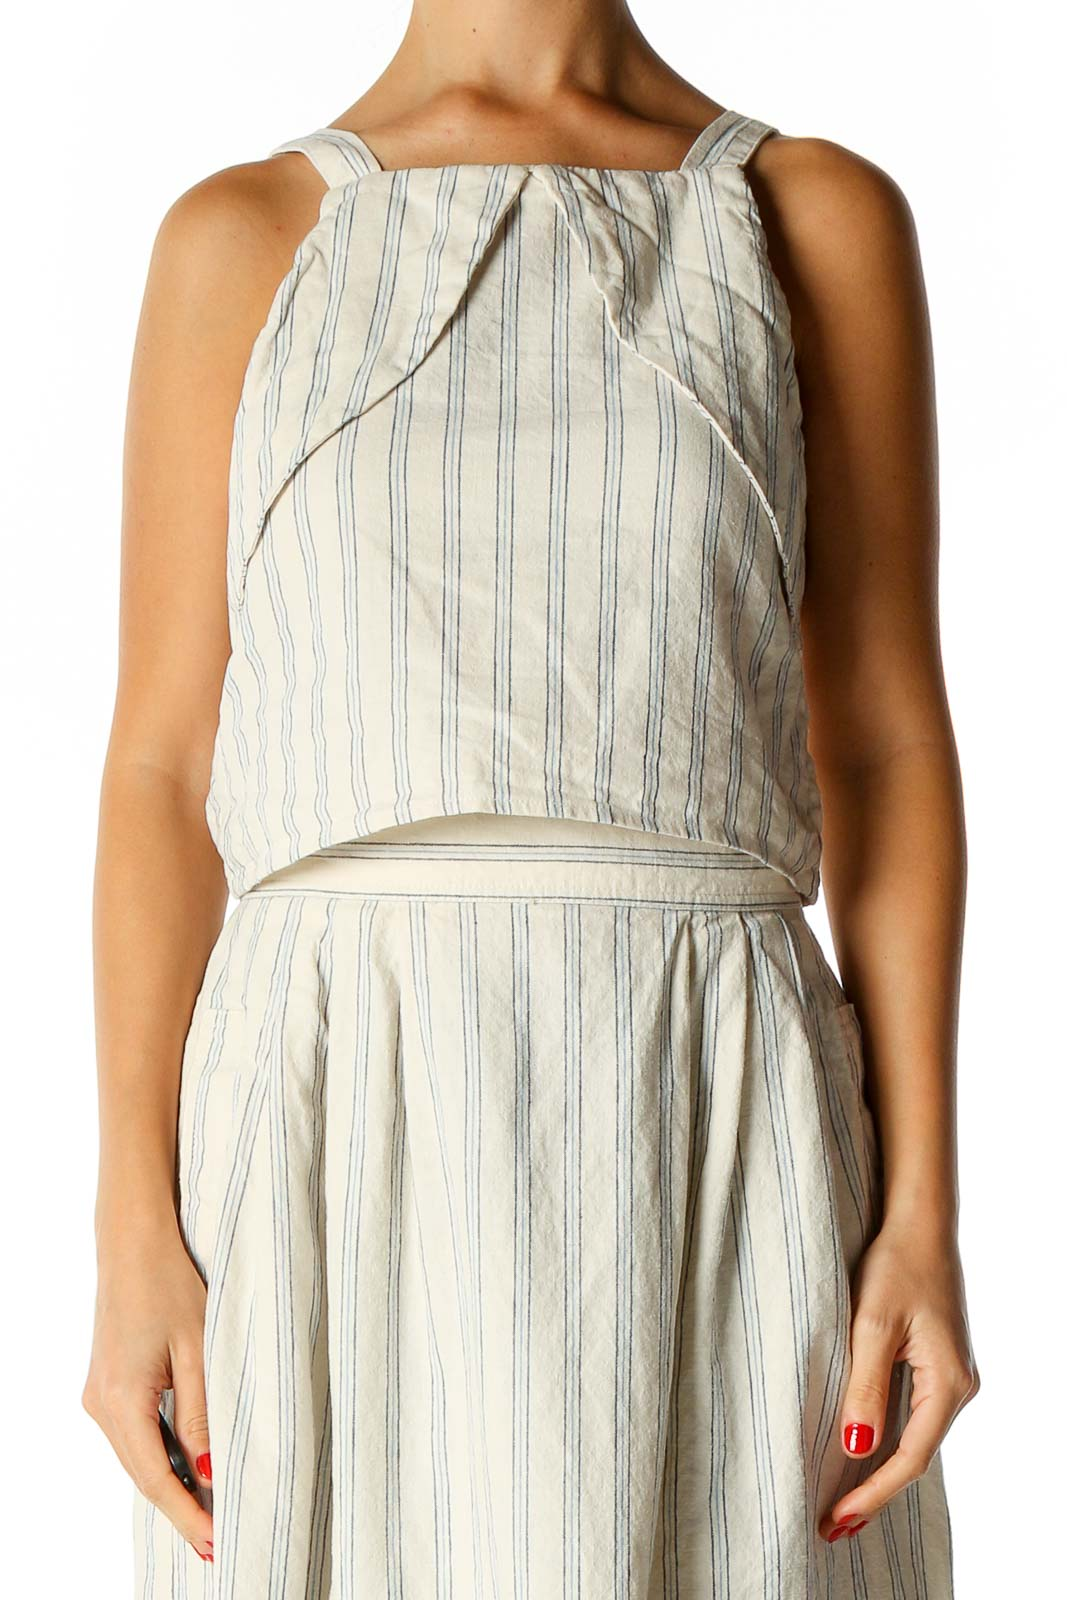 Beige Striped Chic Blouse Front